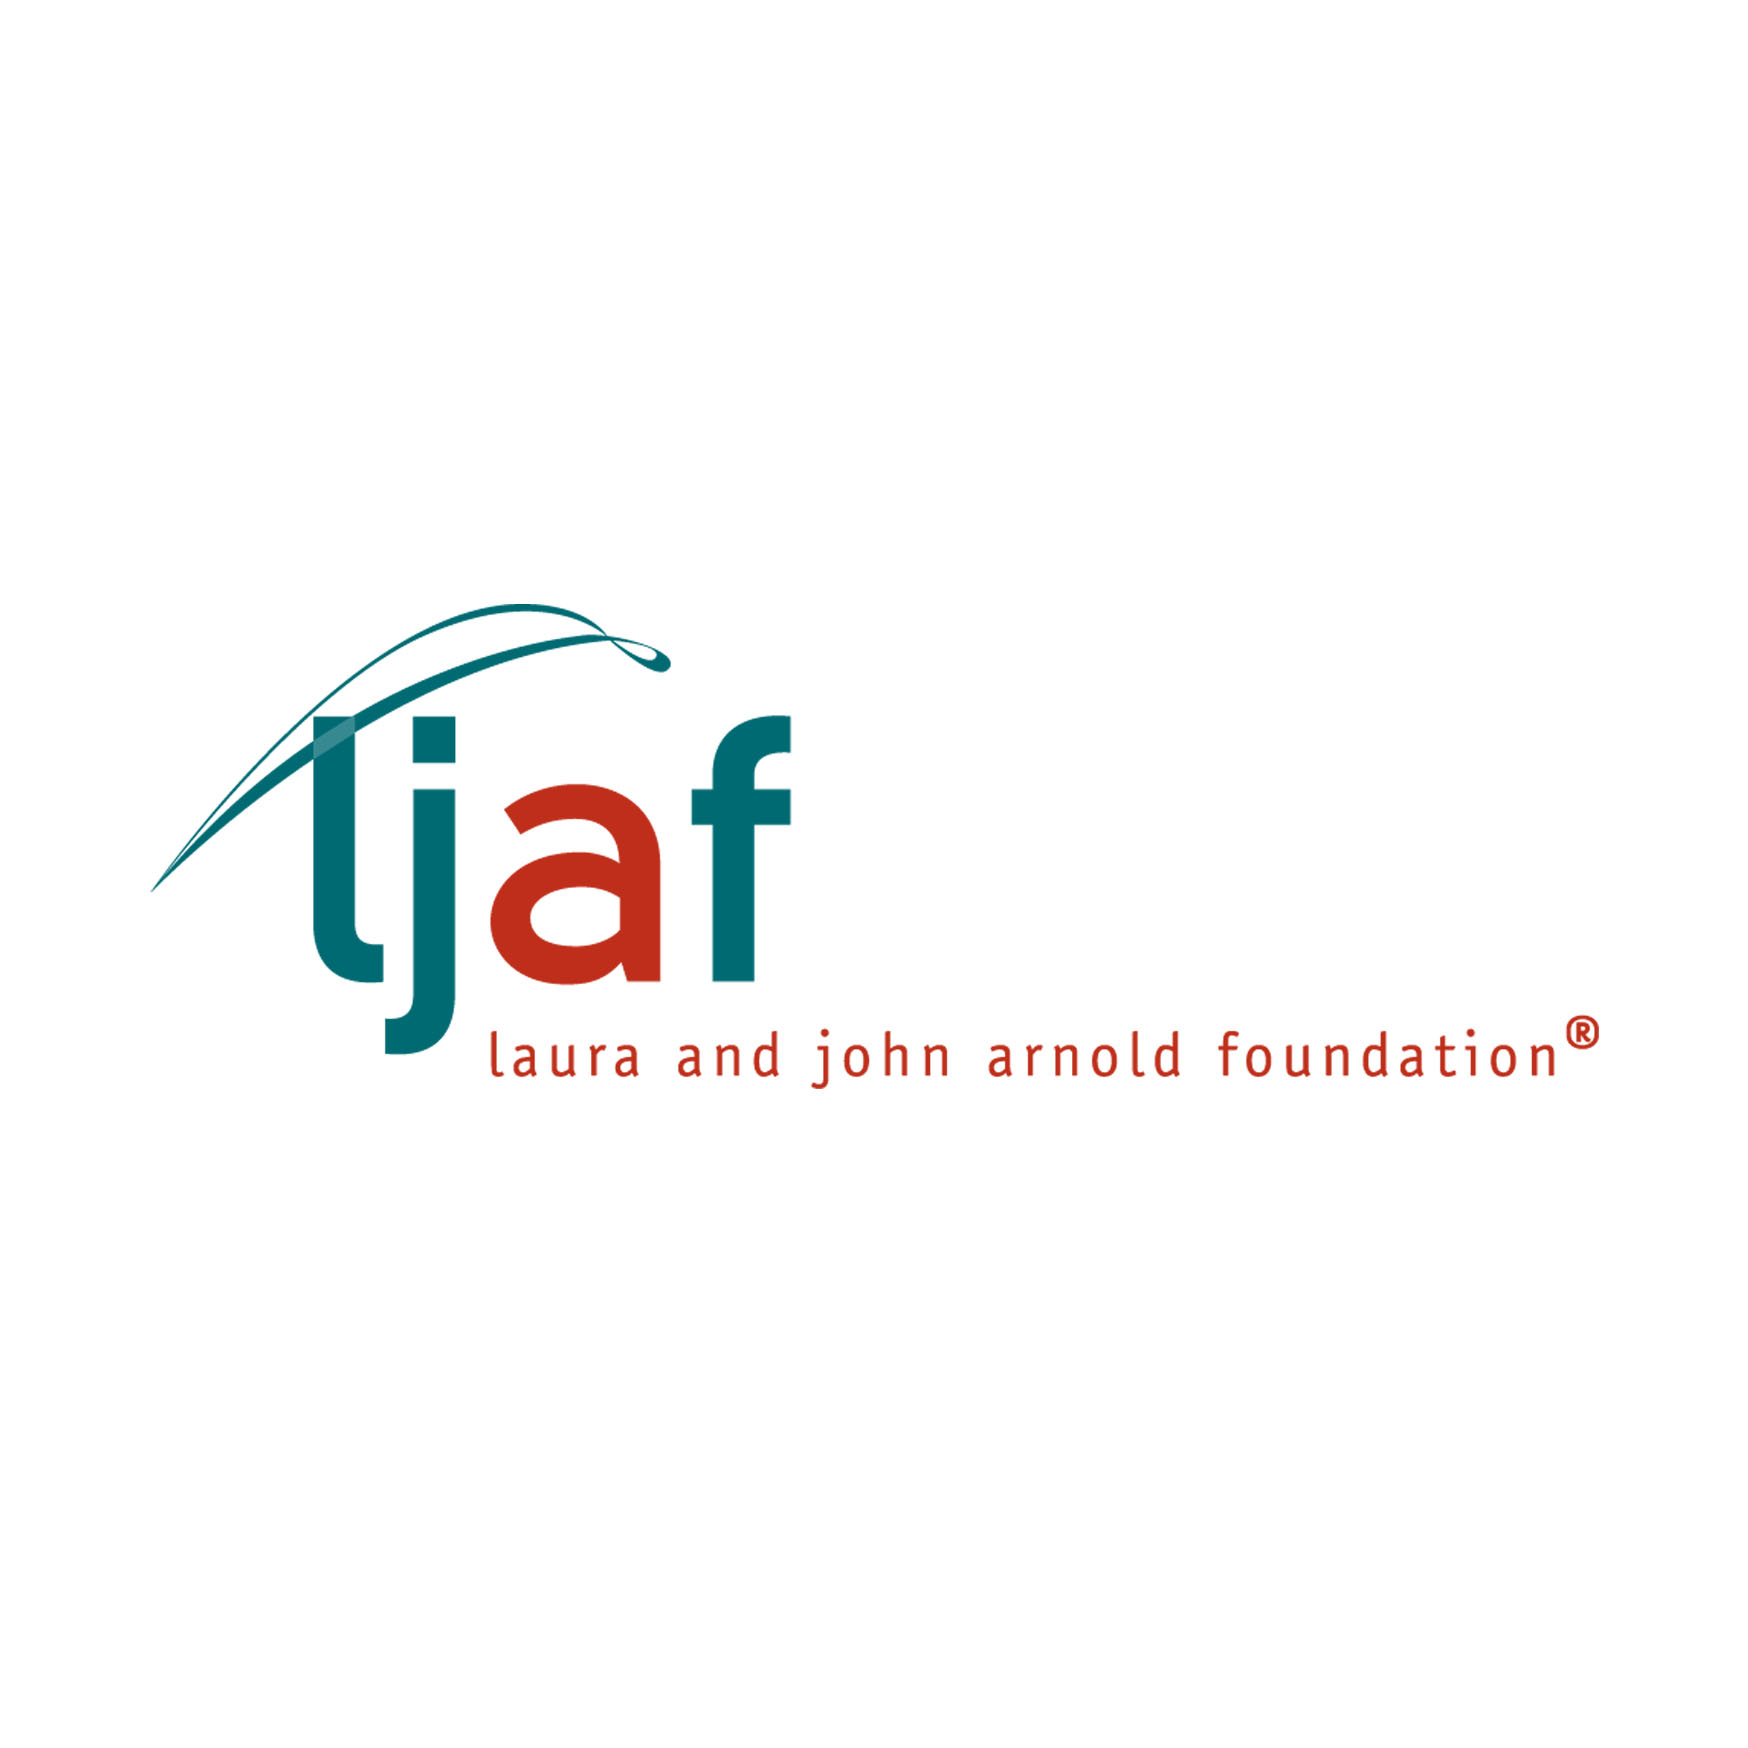 The Laura and John Arnold Foundation